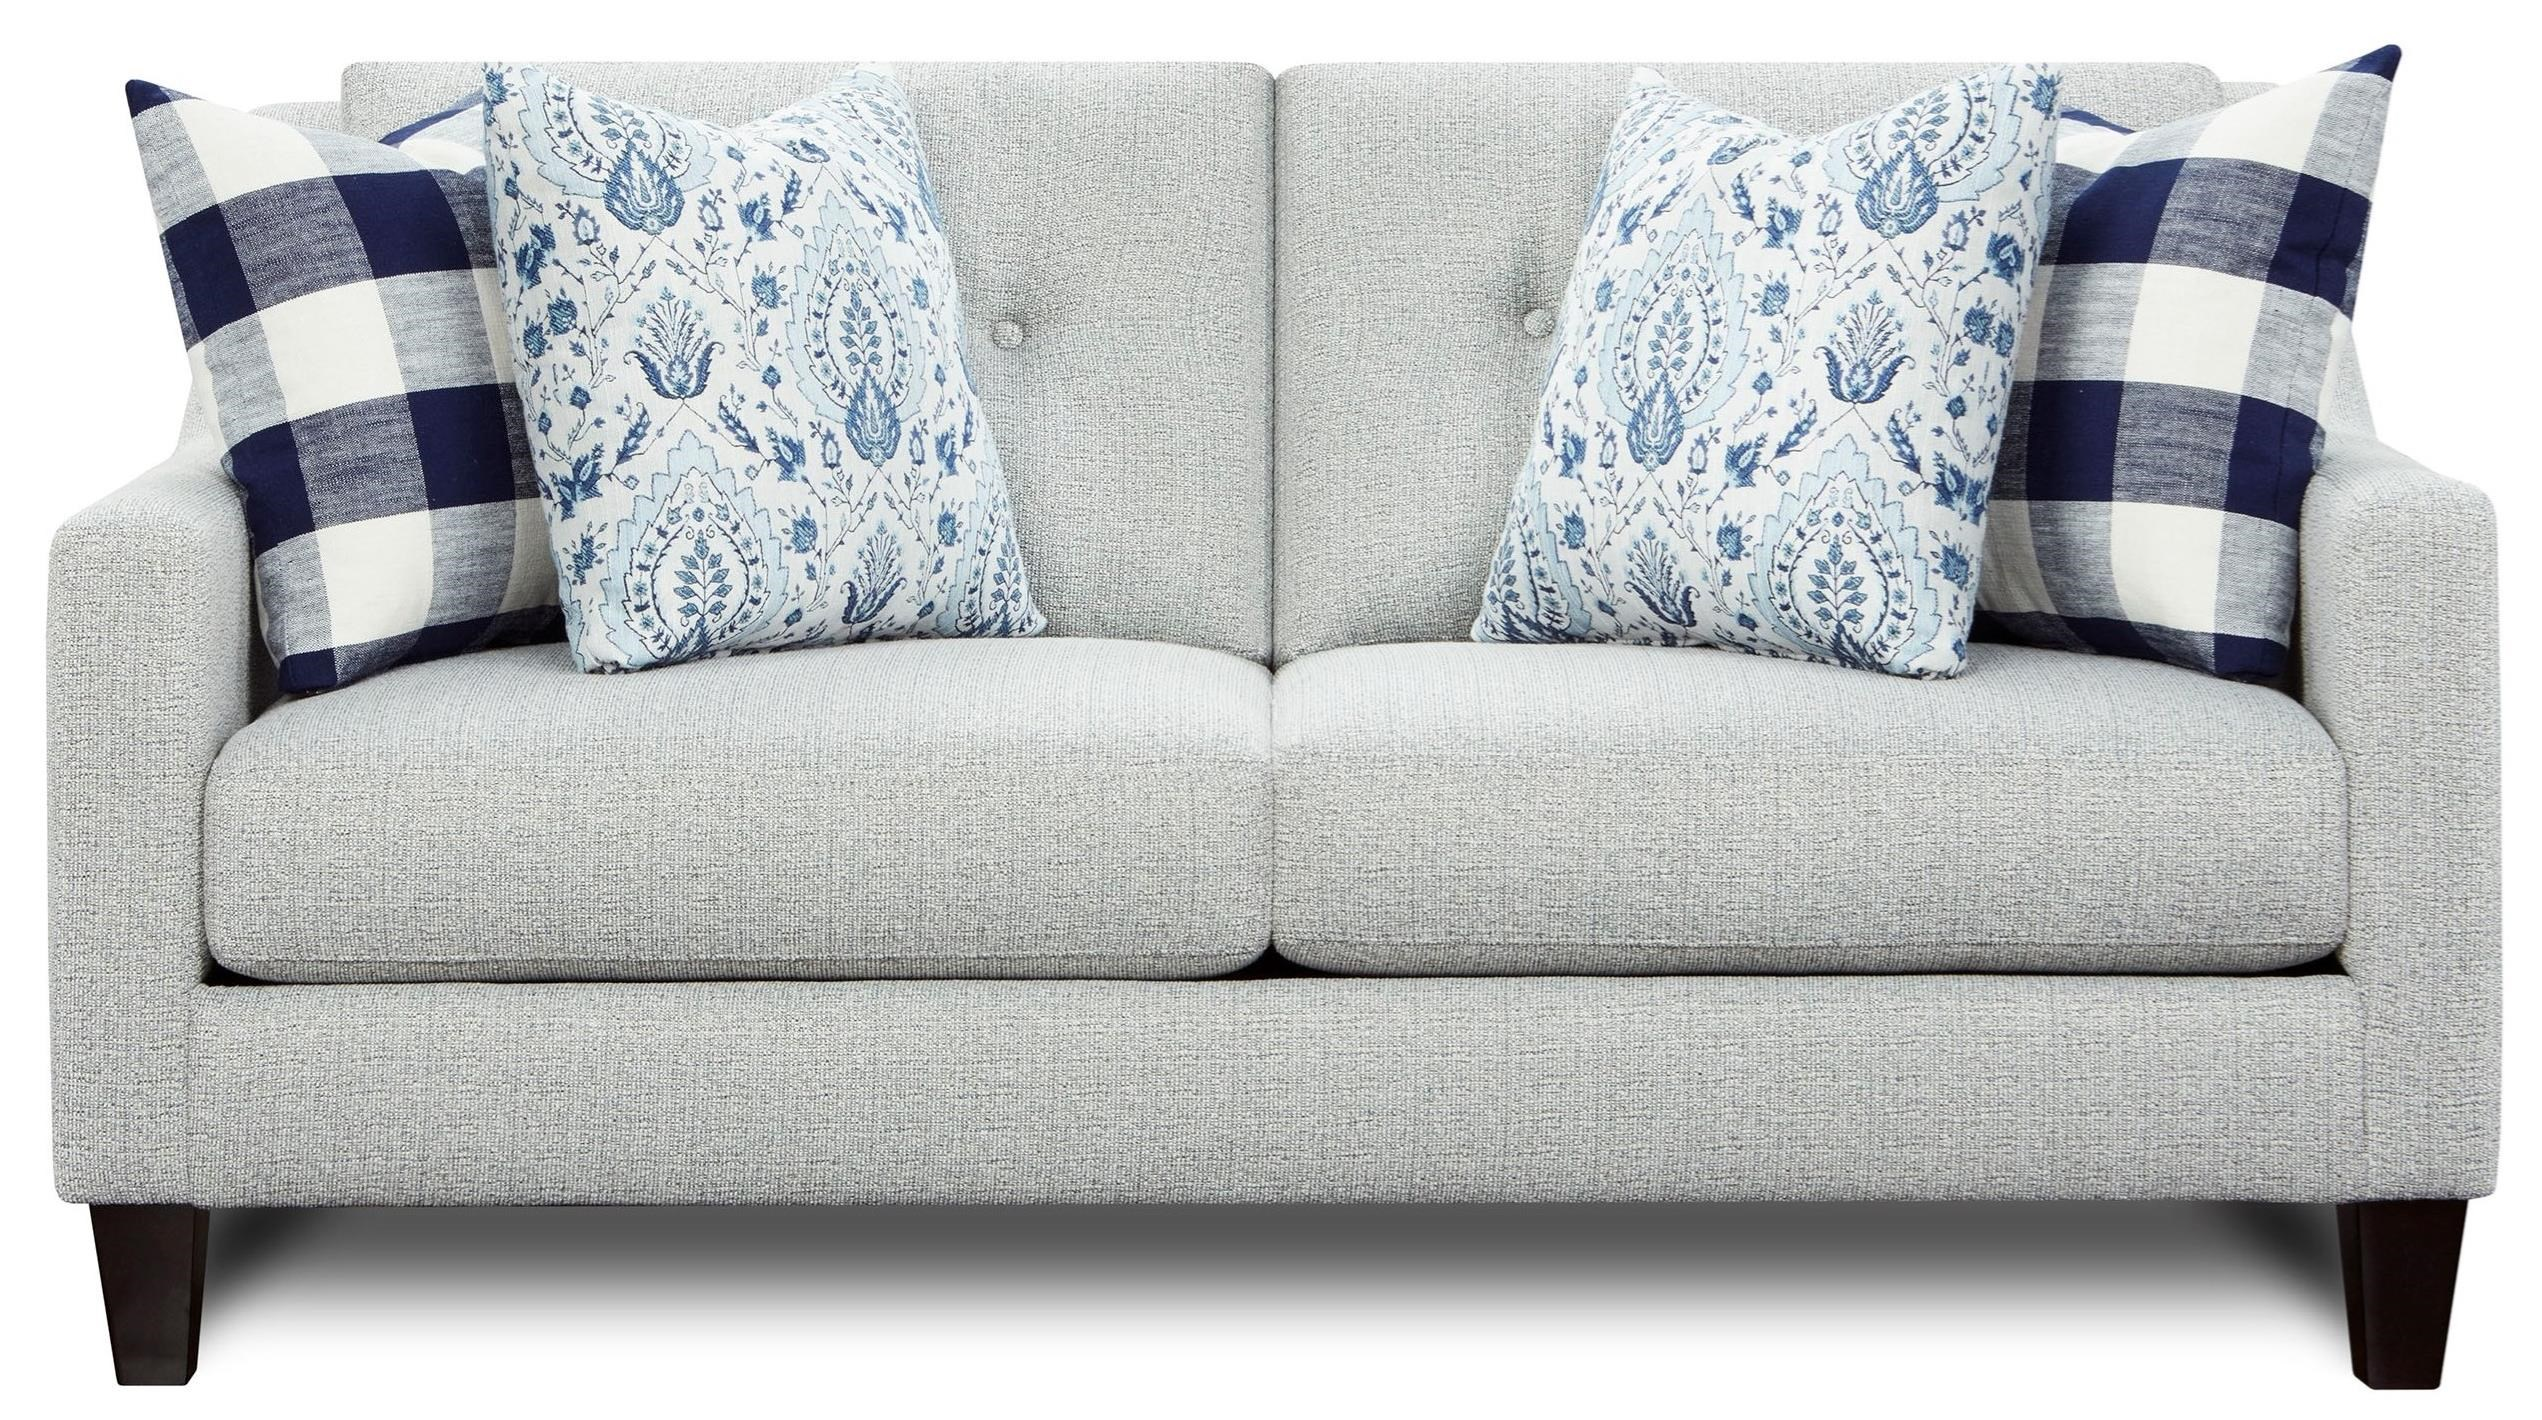 3280 Loveseat by Powell's V.I.P. at Powell's Furniture and Mattress